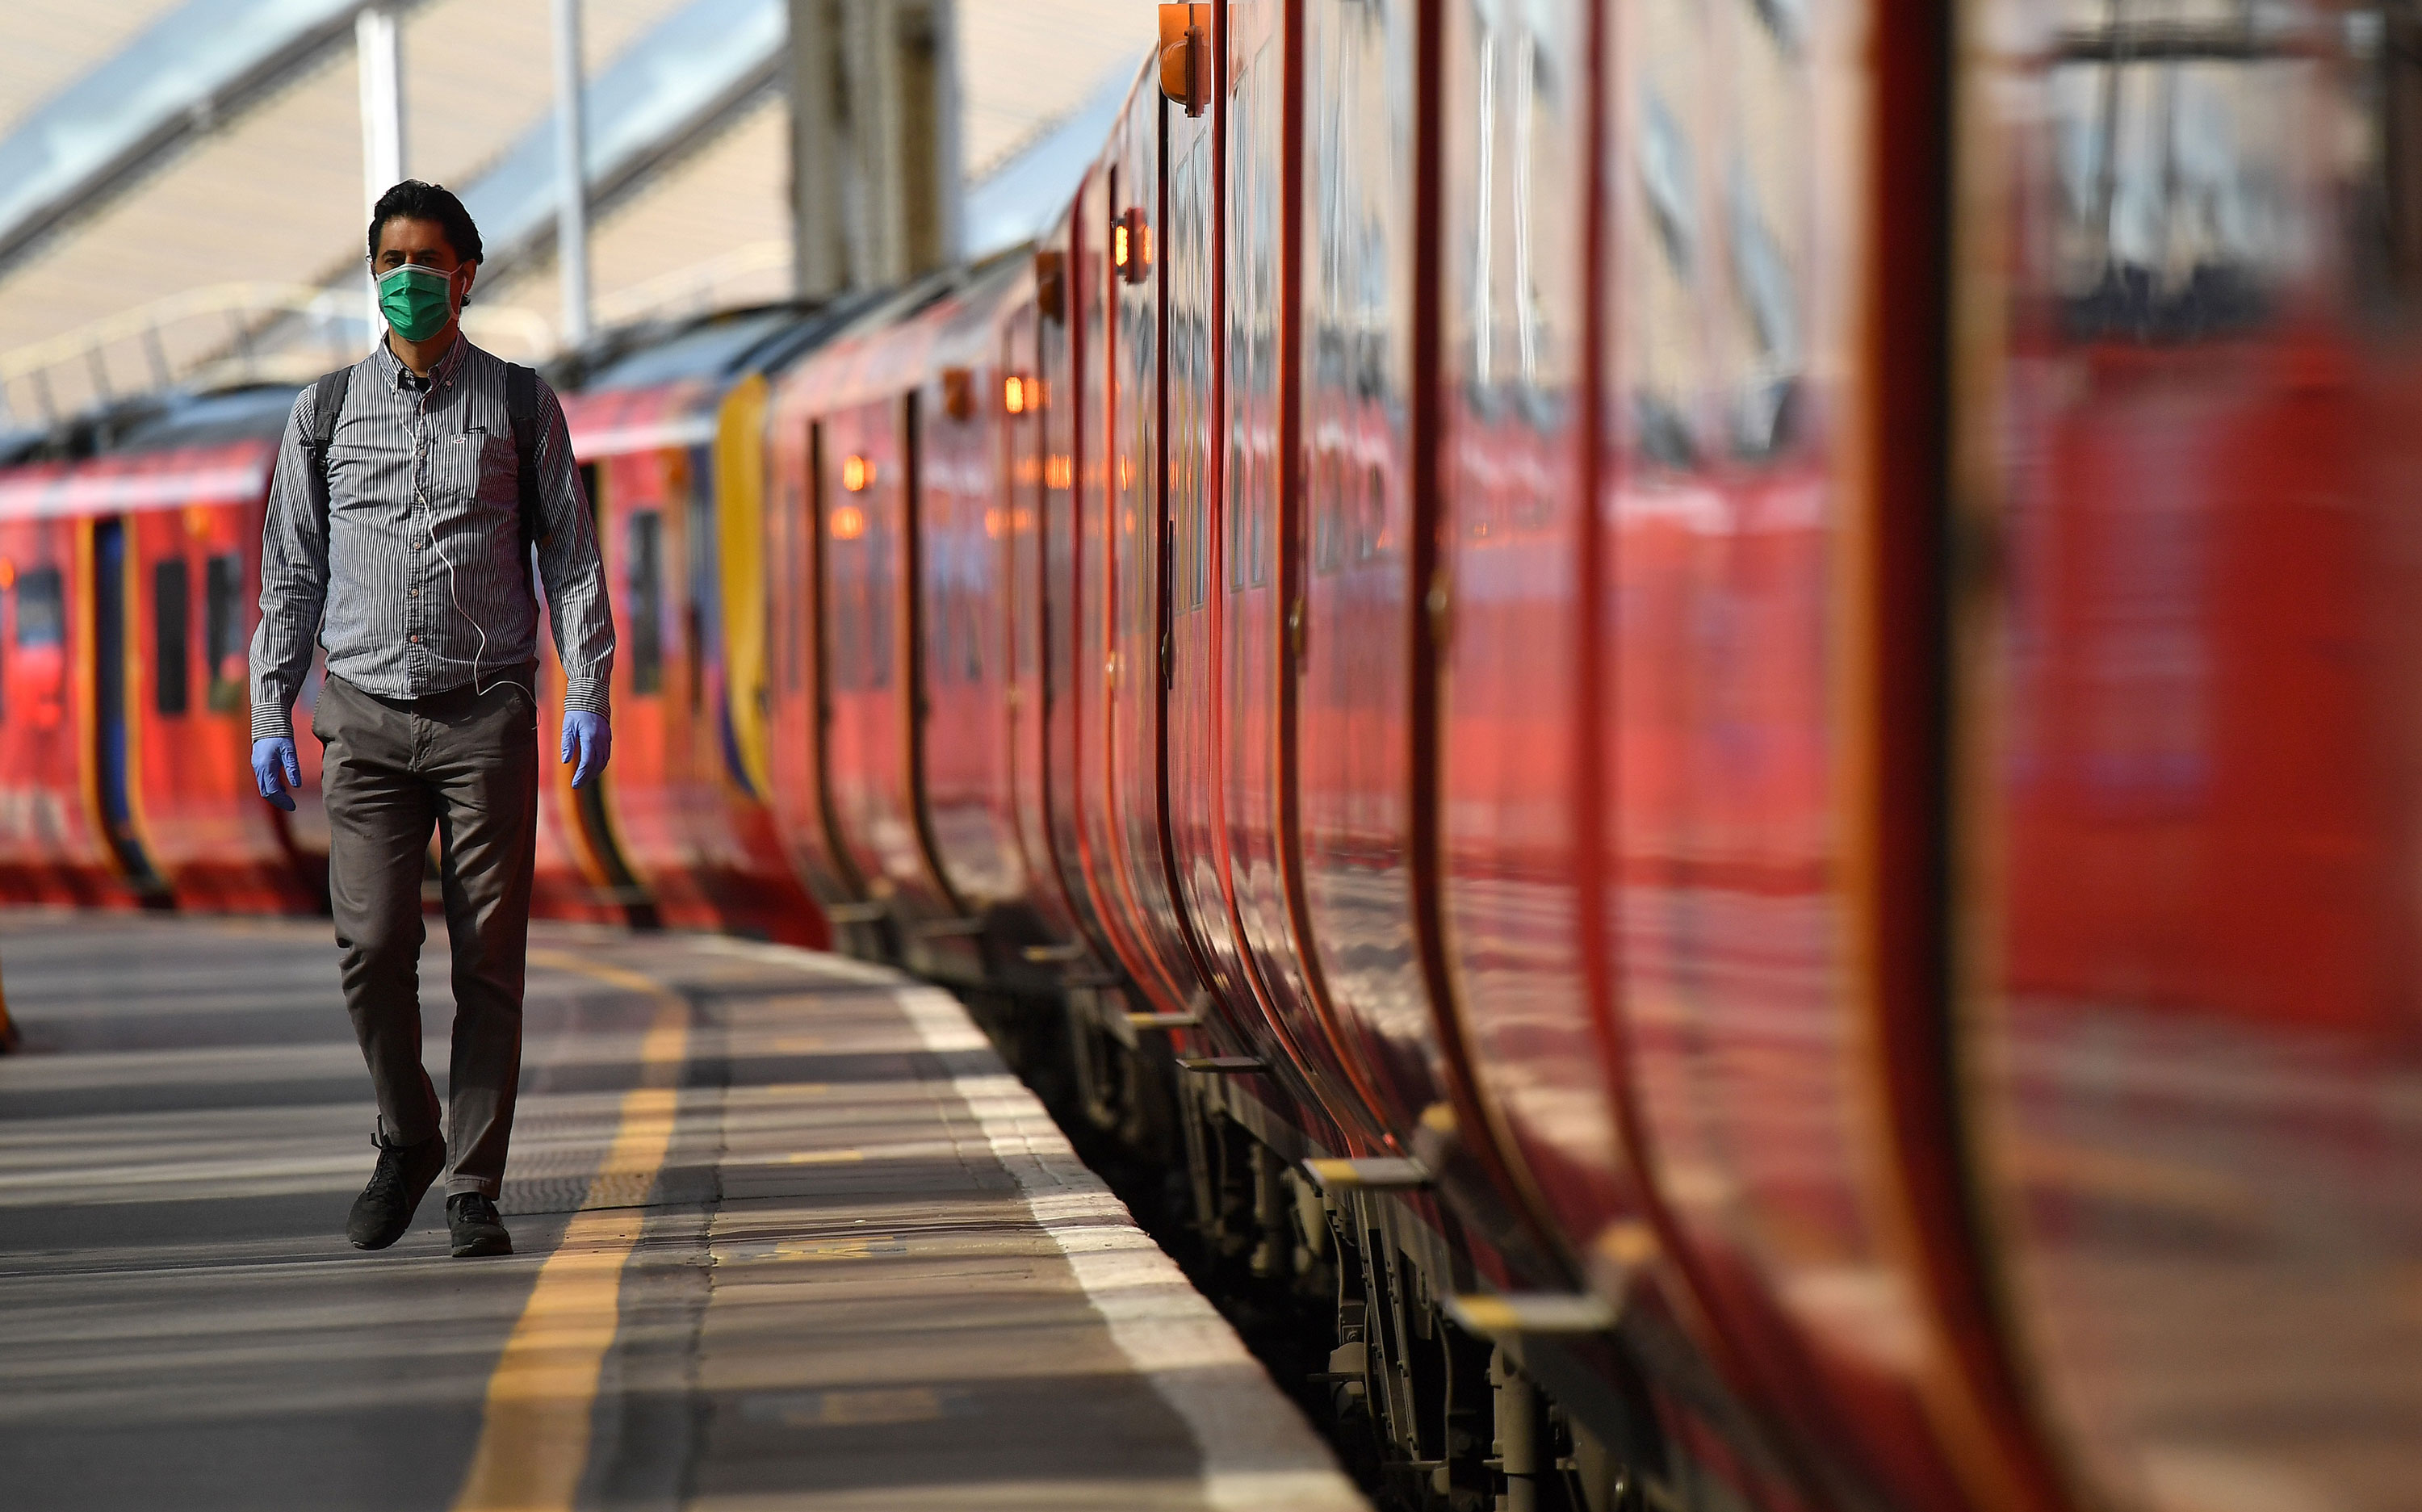 A passenger walks along a platform after arriving at Waterloo Train station in central London on May 18.